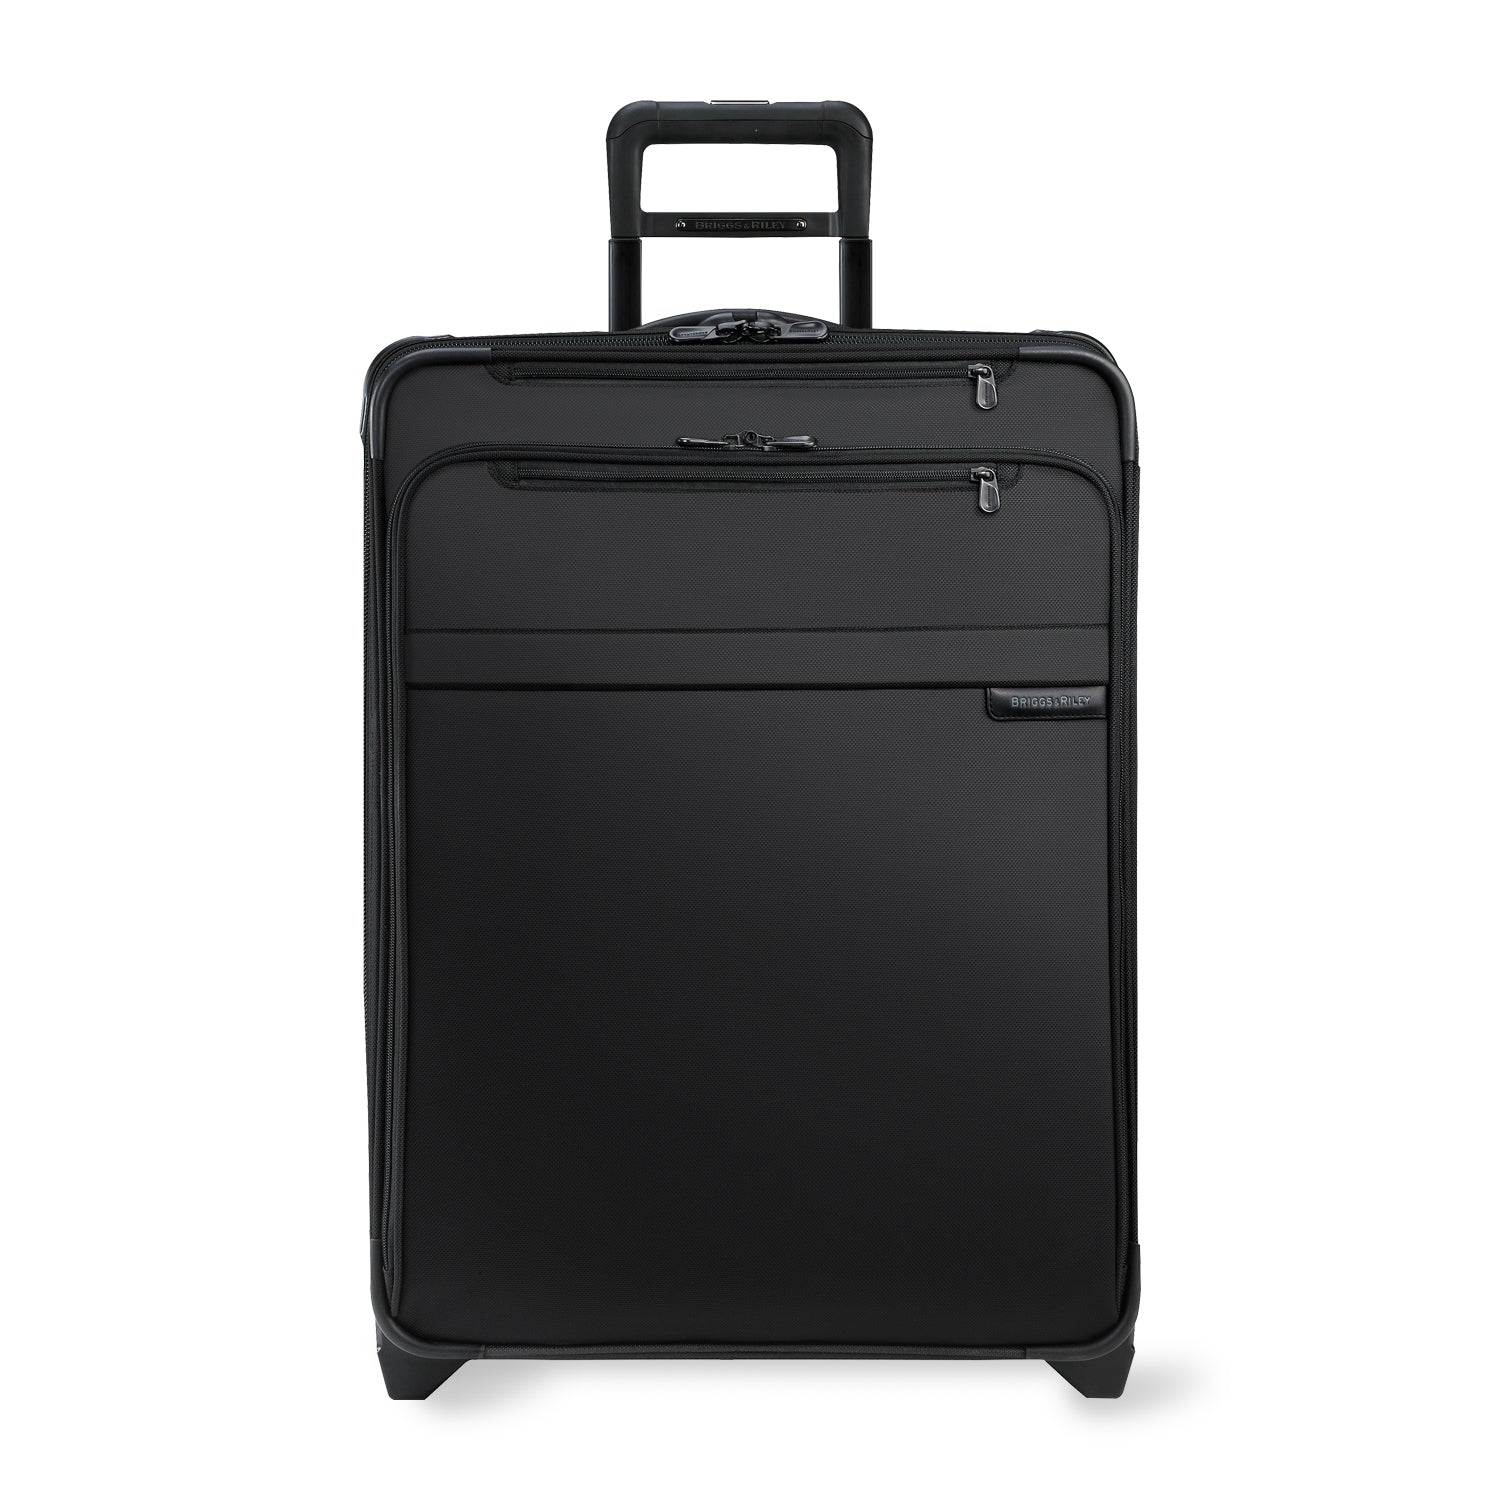 Medium Expandable Upright (Two-Wheel) Suitcase